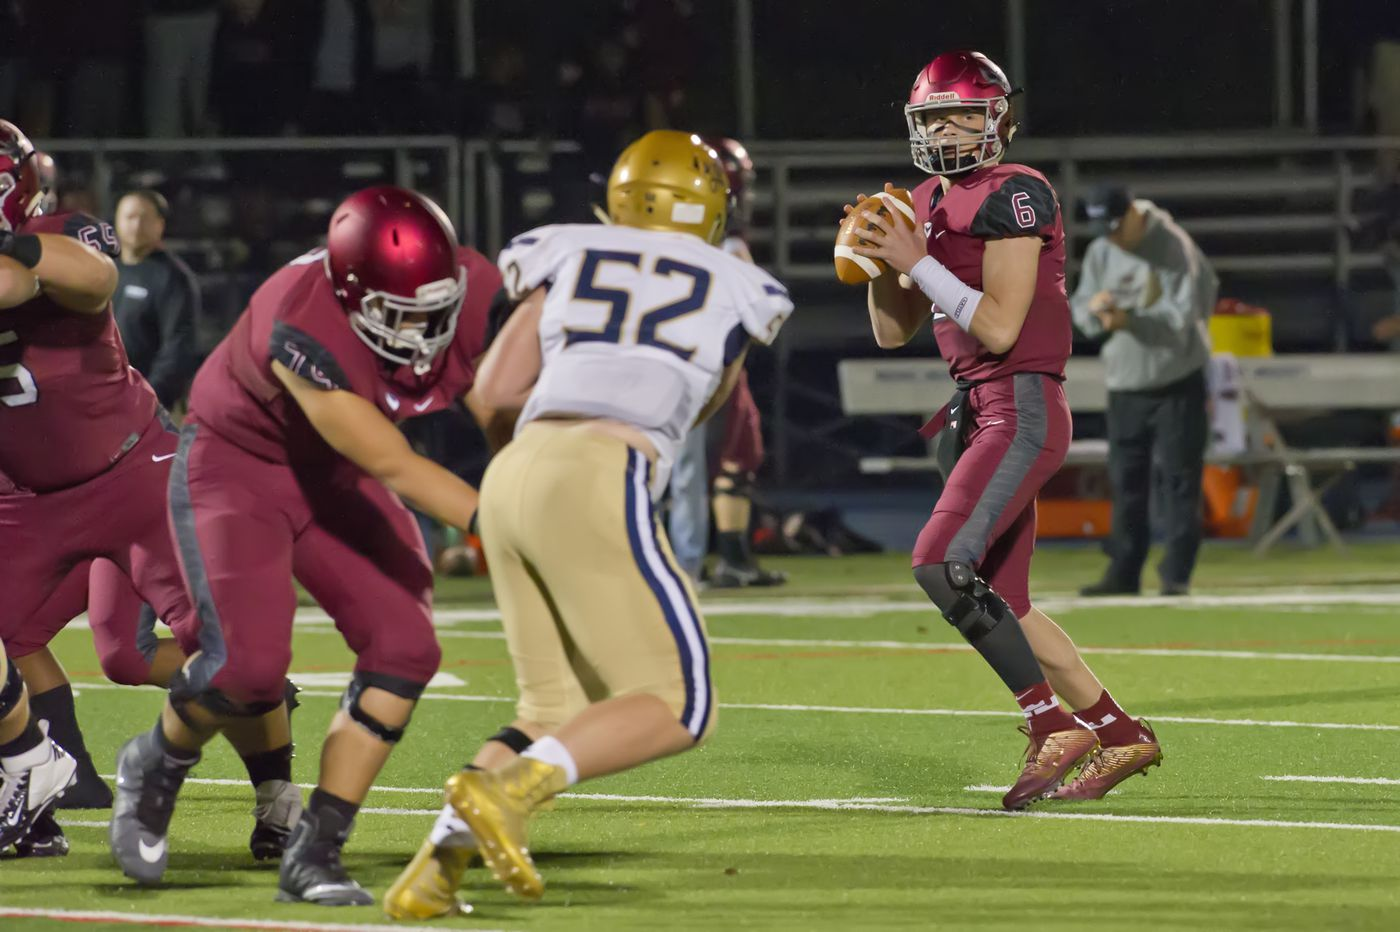 St. Joseph's Prep quarterback Kyle McCord commits to Ohio State